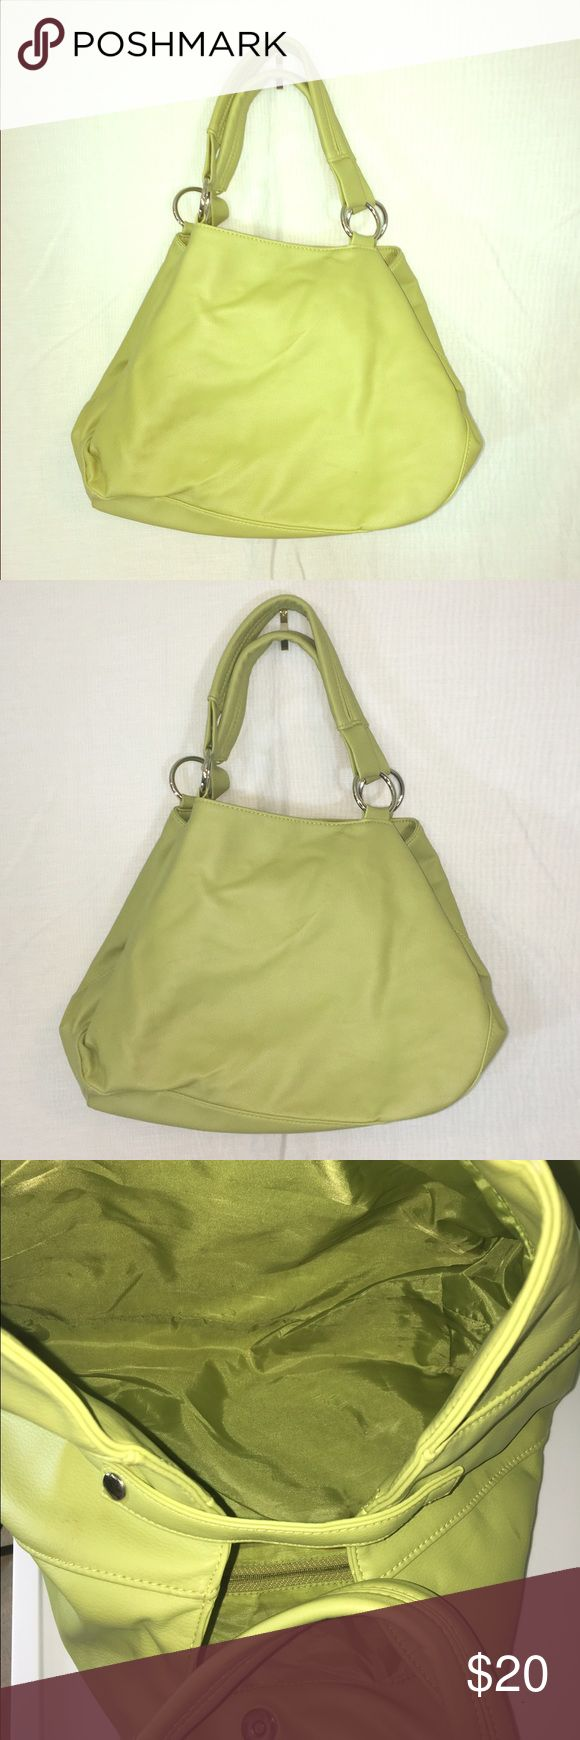 Large Lime Green Hobo Bag A beautifully kept bag in a unique shape and color. Would be a convenient and fashionable piece to add to any outfit! Bags Hobos